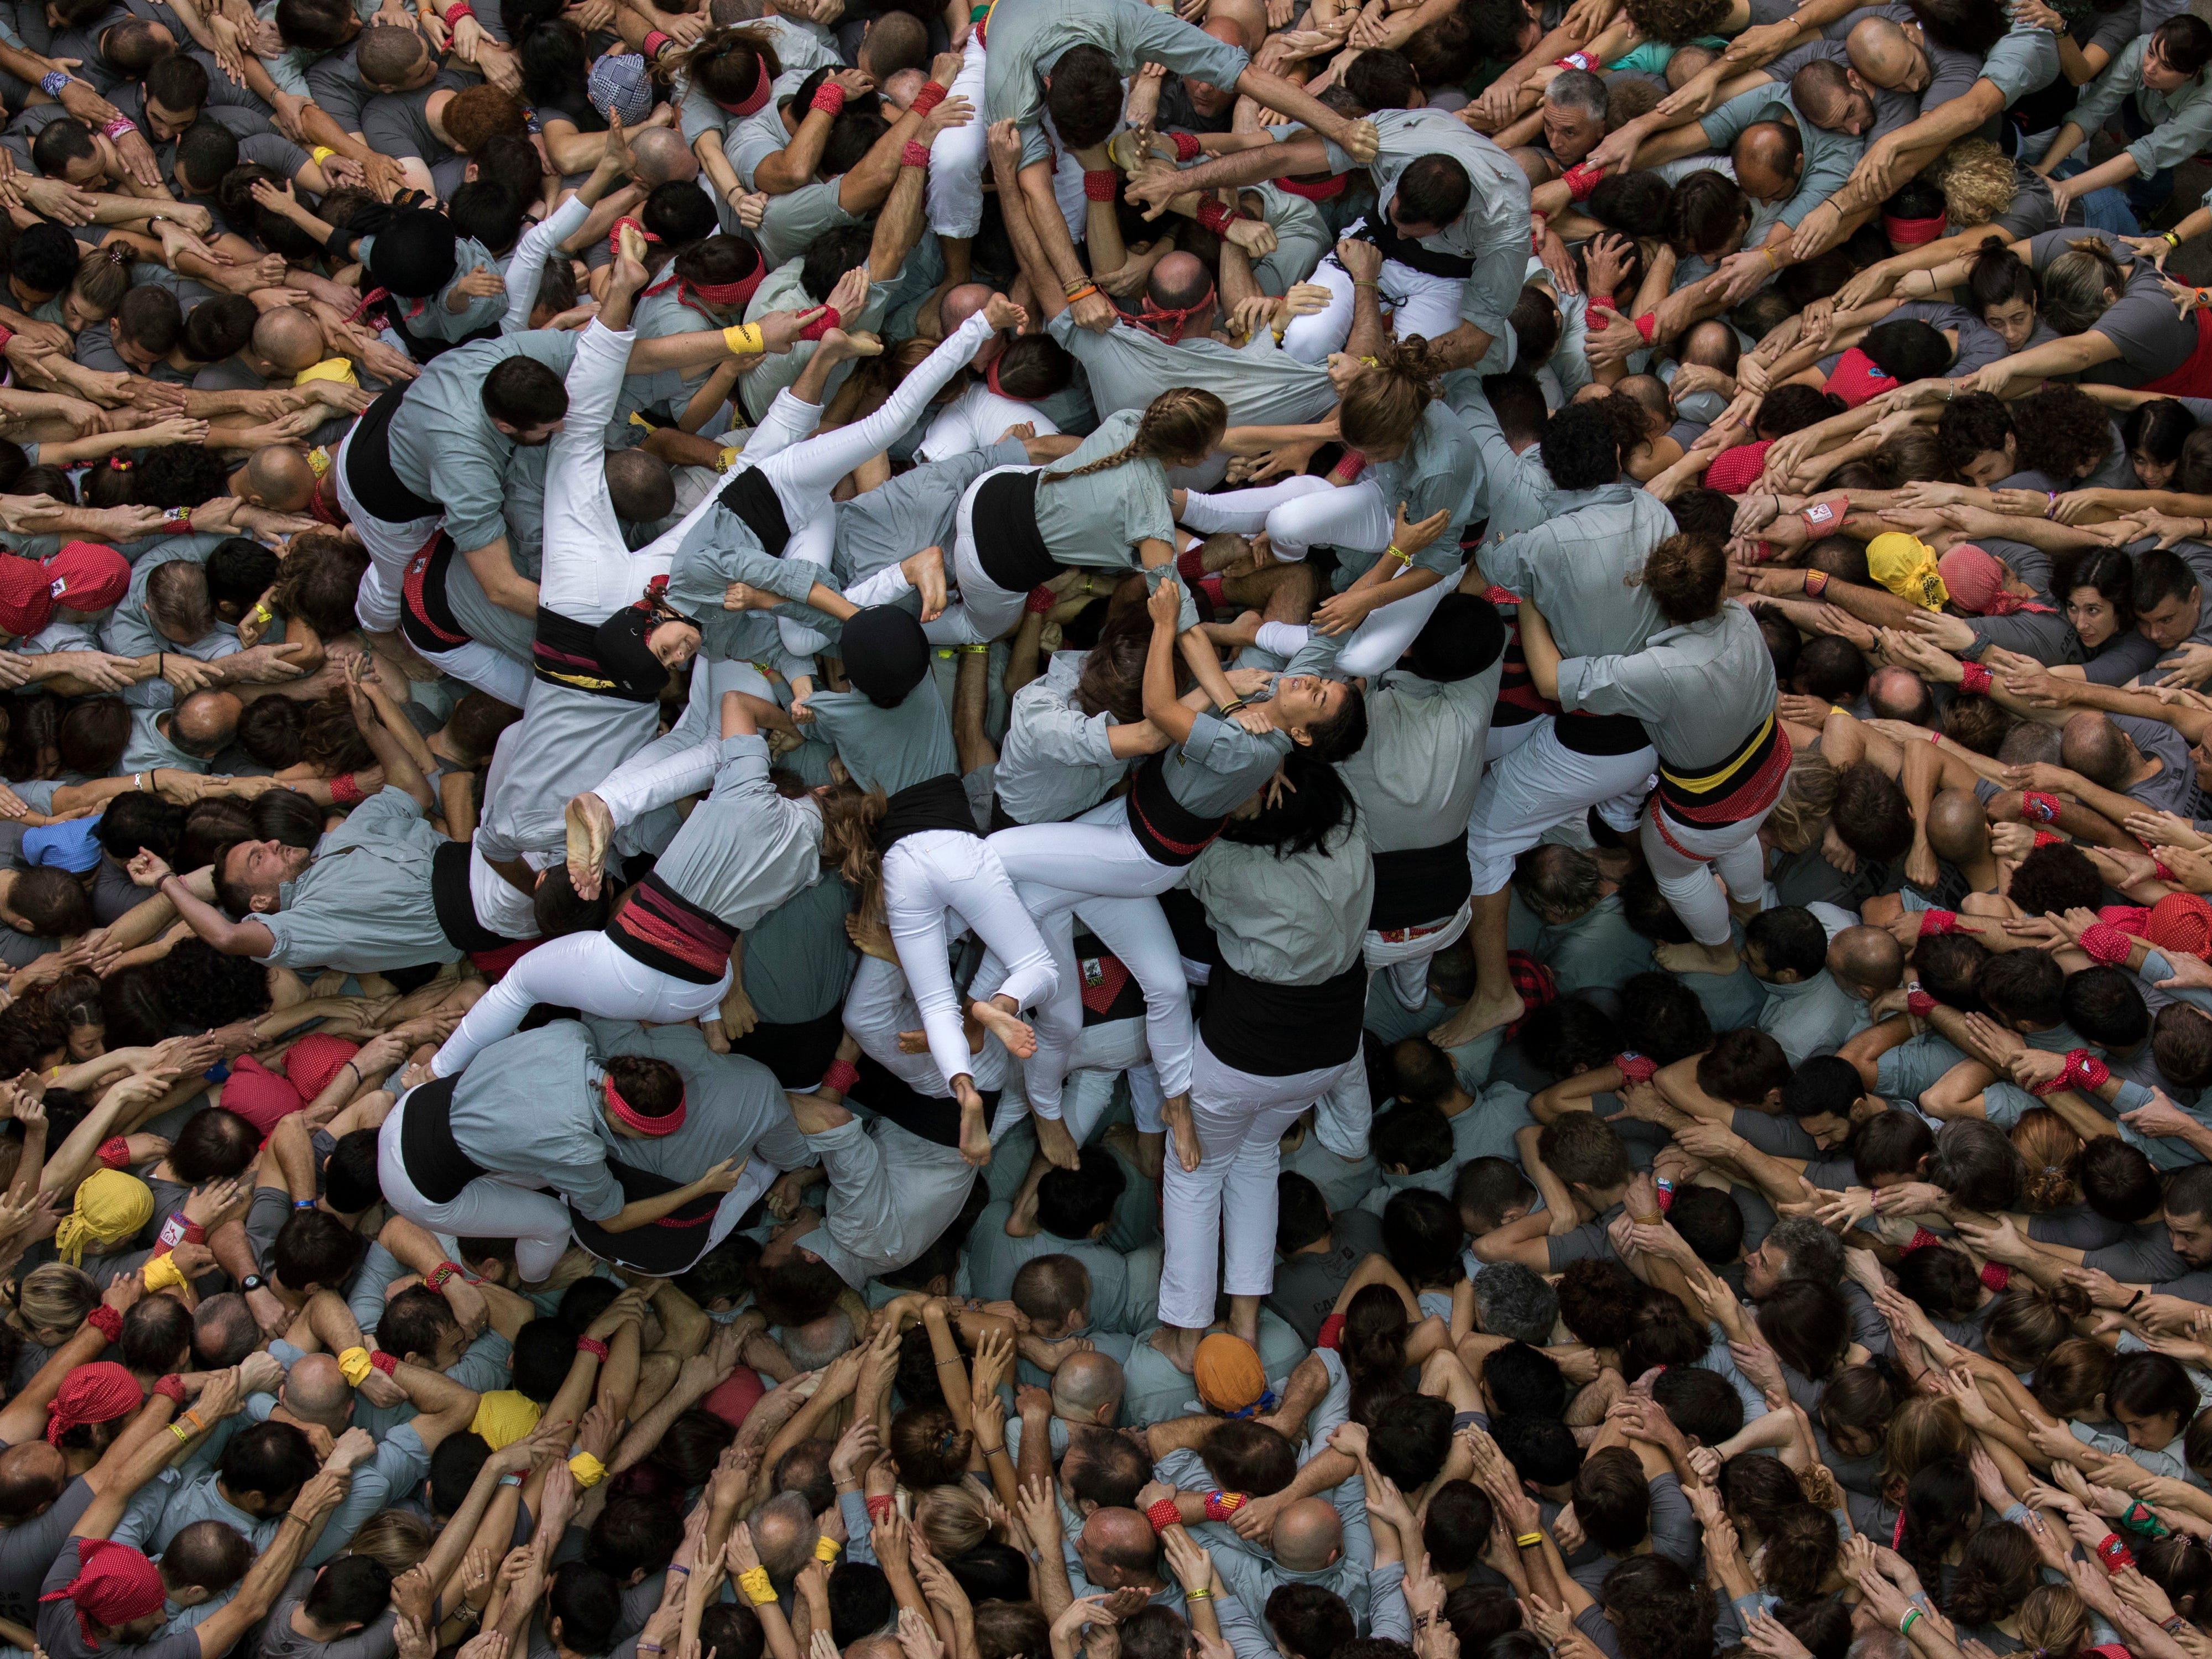 """Members of """"Castellers de Sants"""" fall as they try to complete their human tower during the 27th Human Tower Competition in Tarragona, Spain, on Sunday, Oct. 7, 2018. The tradition of building human towers or """"castells"""" dates back to the 18th century and takes place during festivals in Catalonia, where """"colles"""" or teams compete to build the tallest and most complicated towers. """"Castells"""" were declared by UNESCO one of the Masterpieces of the Oral and Intangible Heritage of Humanity."""